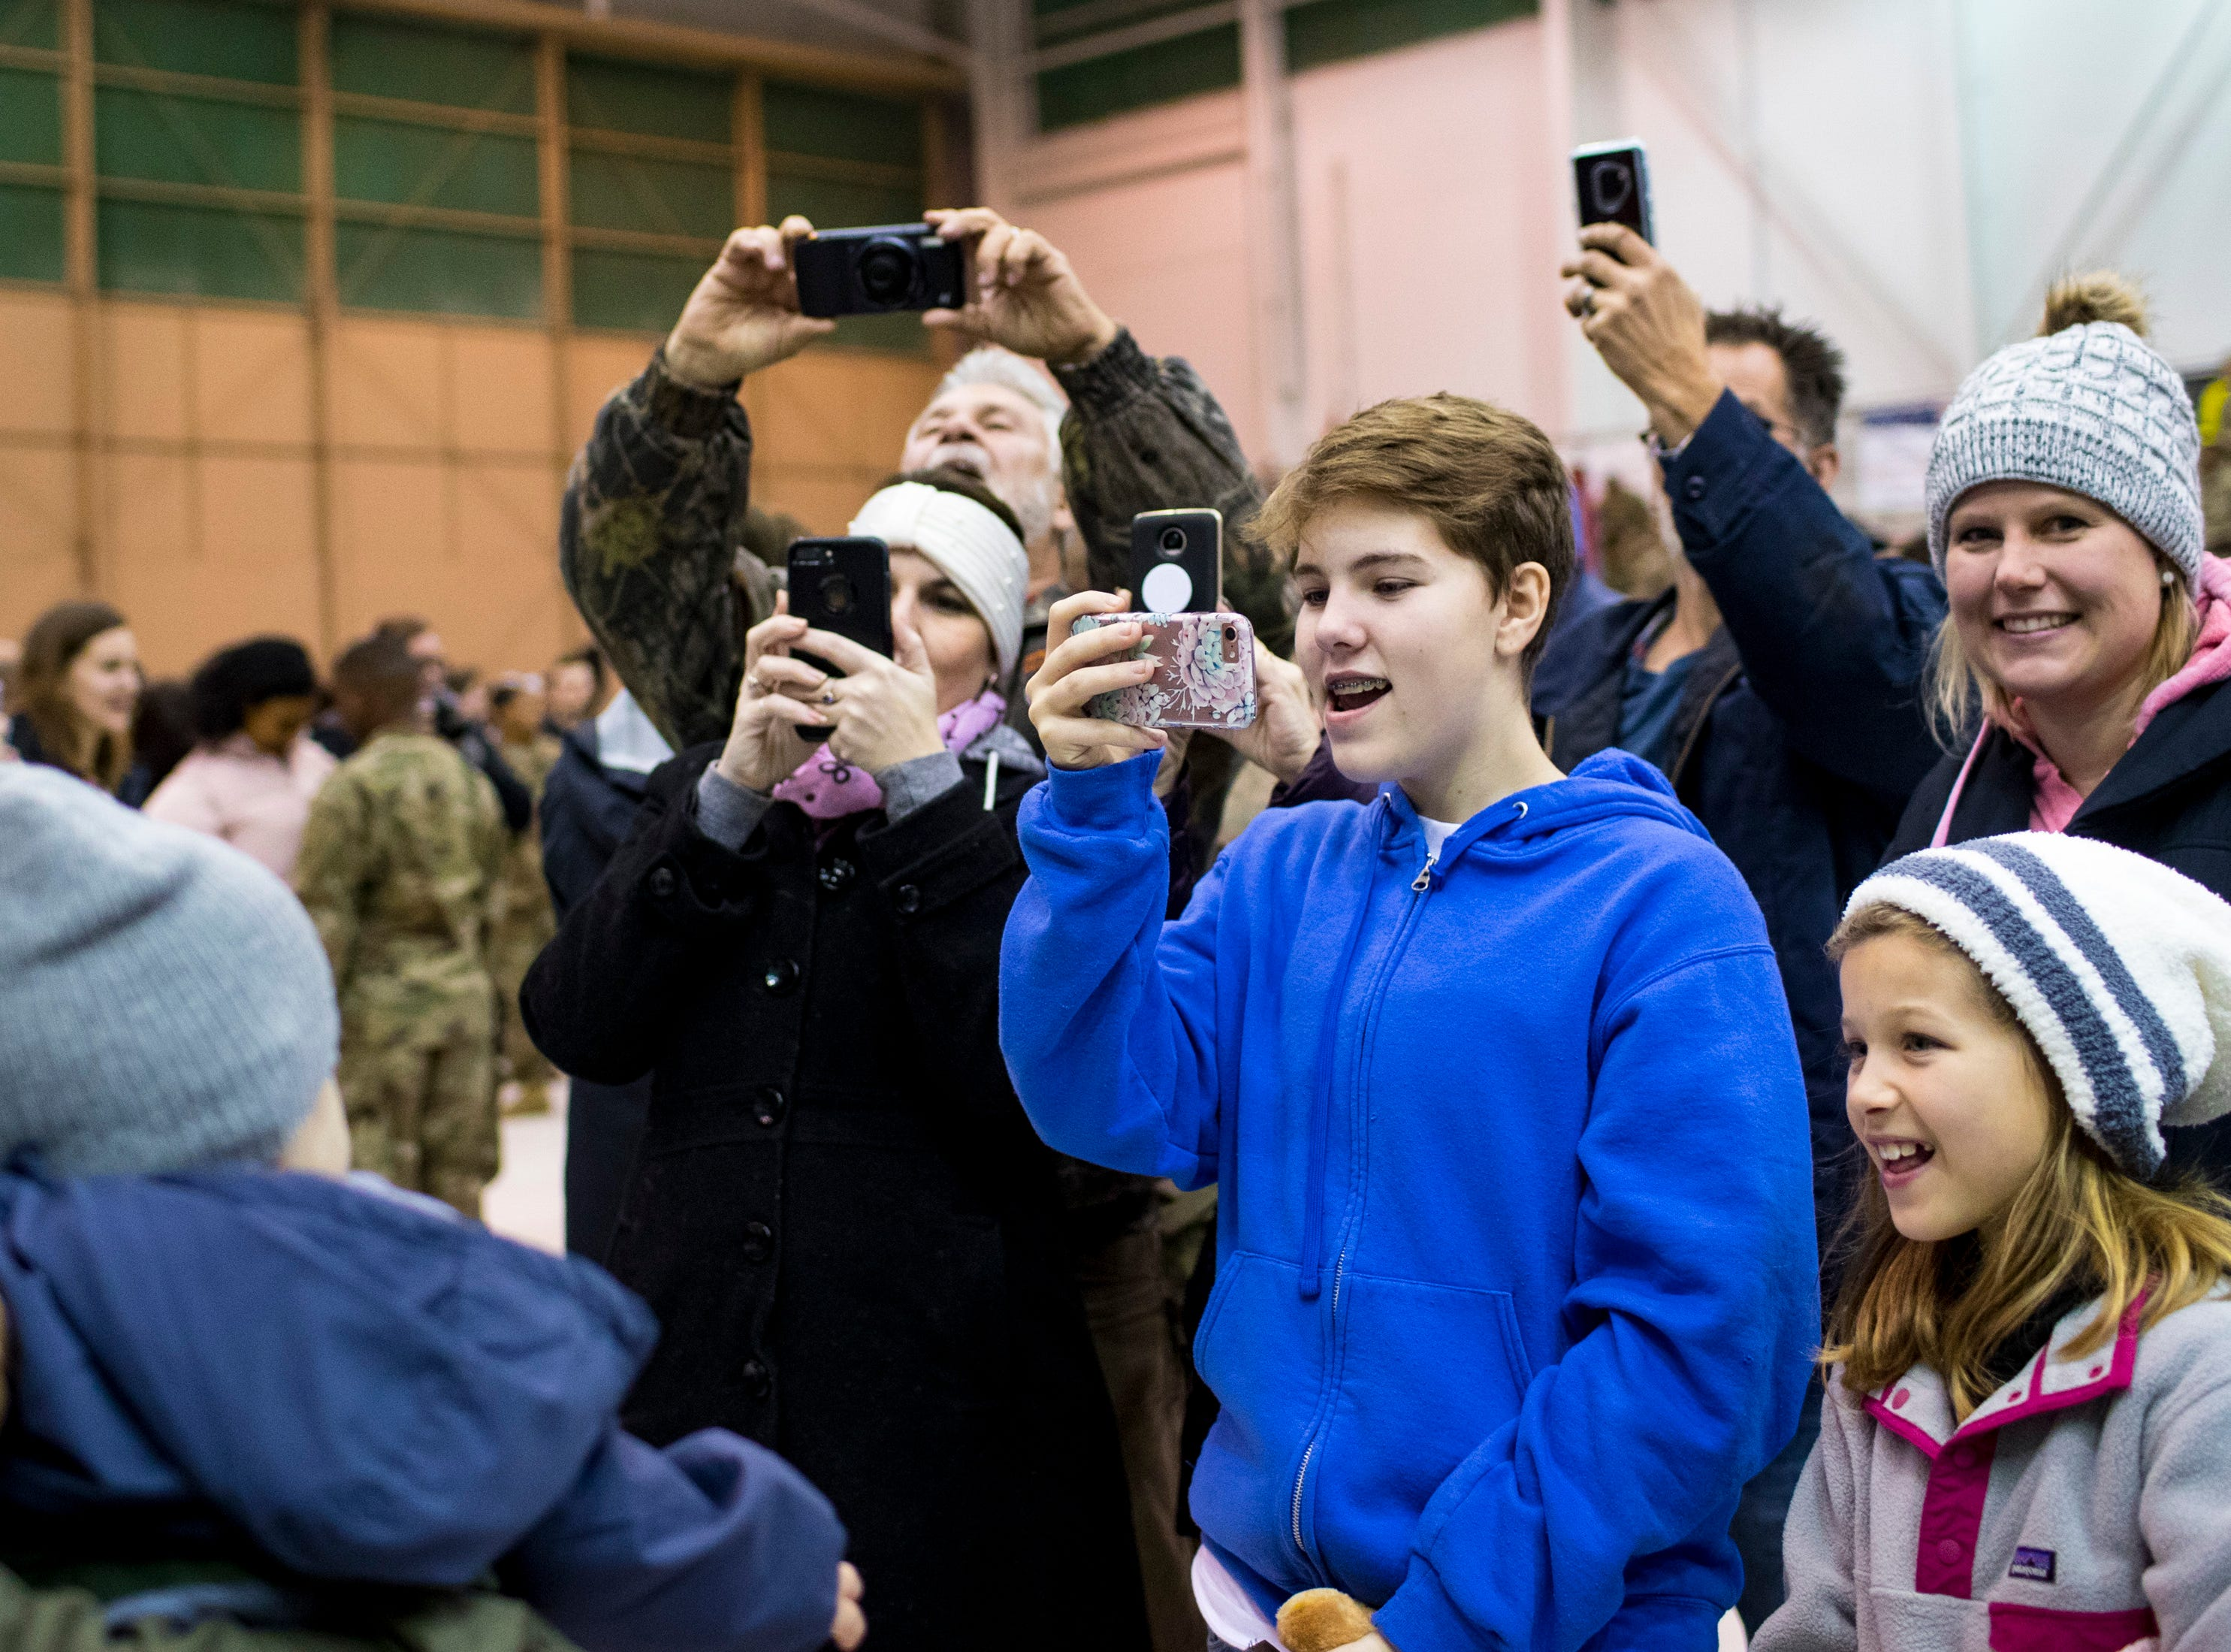 Friends and family members take pictures during the welcome home ceremony for the 2nd Battalion, 44th Air Defense Artillery Regiment and 101st Airborne Division at Fort Campbell in the early hours of Monday, Nov. 19, 2018. The soldiers were returning from a 9-month deployment in Afghanistan.